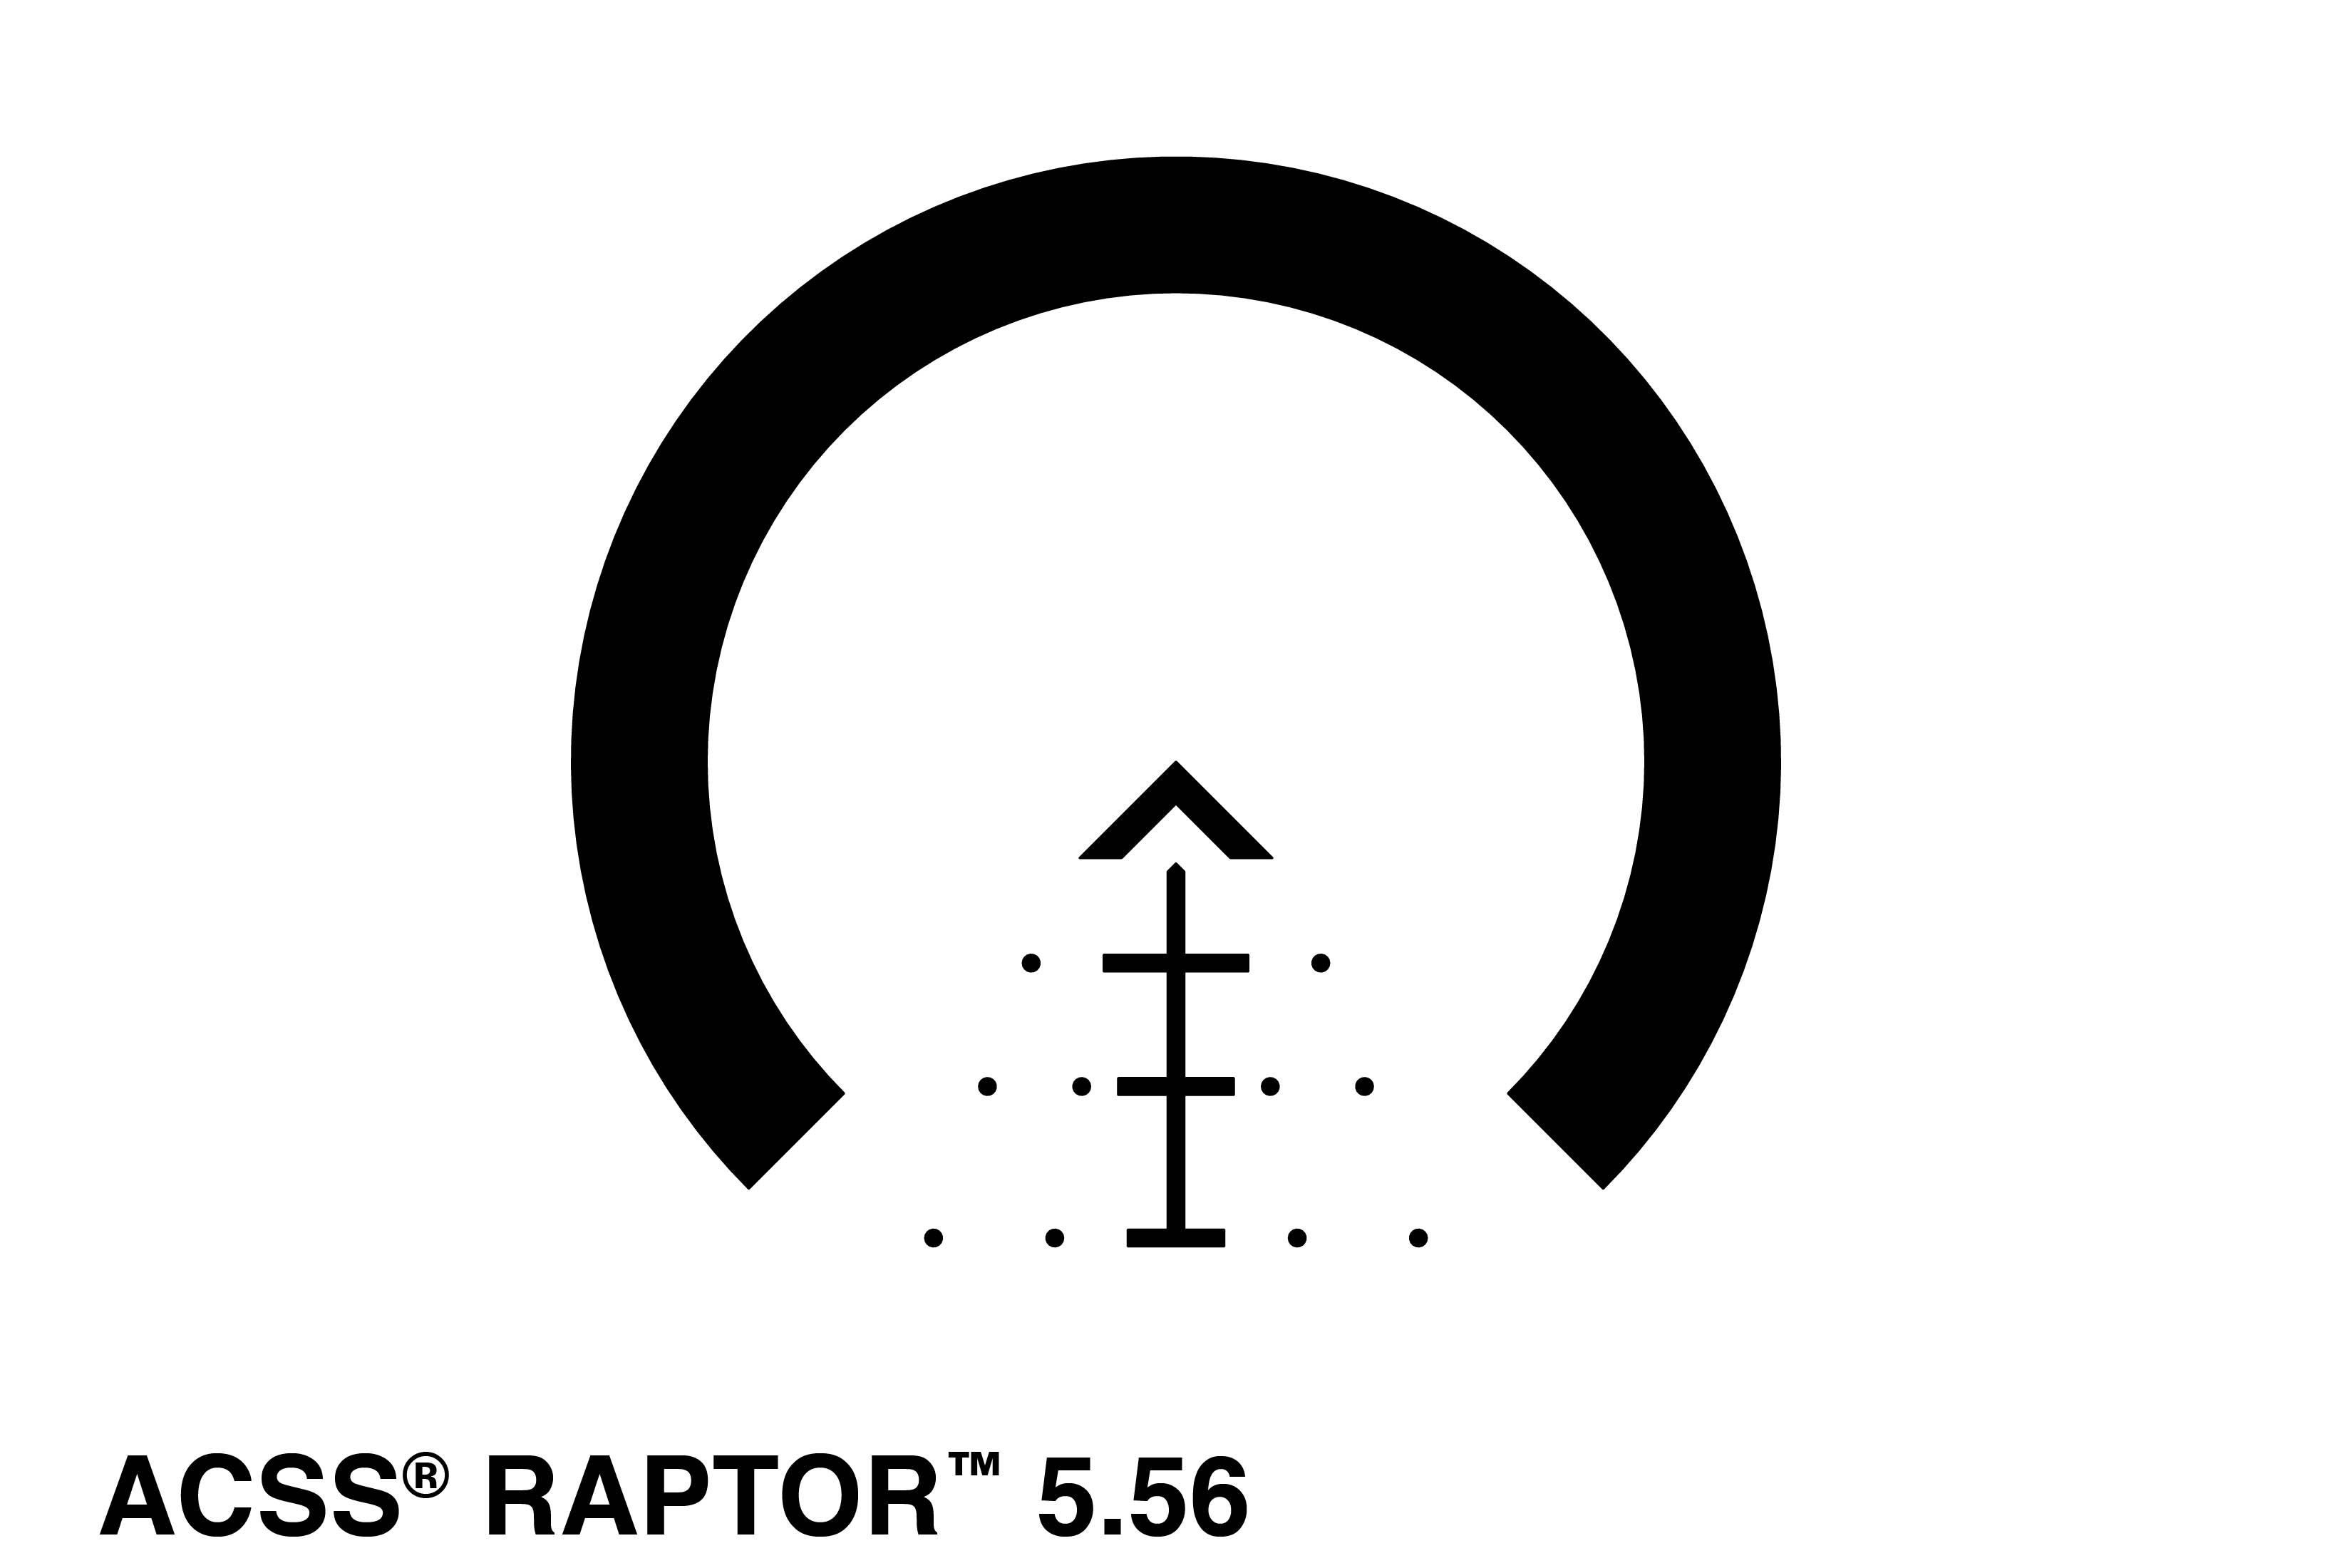 Primary Arms 1-6x24mm First Focal Plane glass etched ACSS Raptor 5.56 Reticle - No illumination